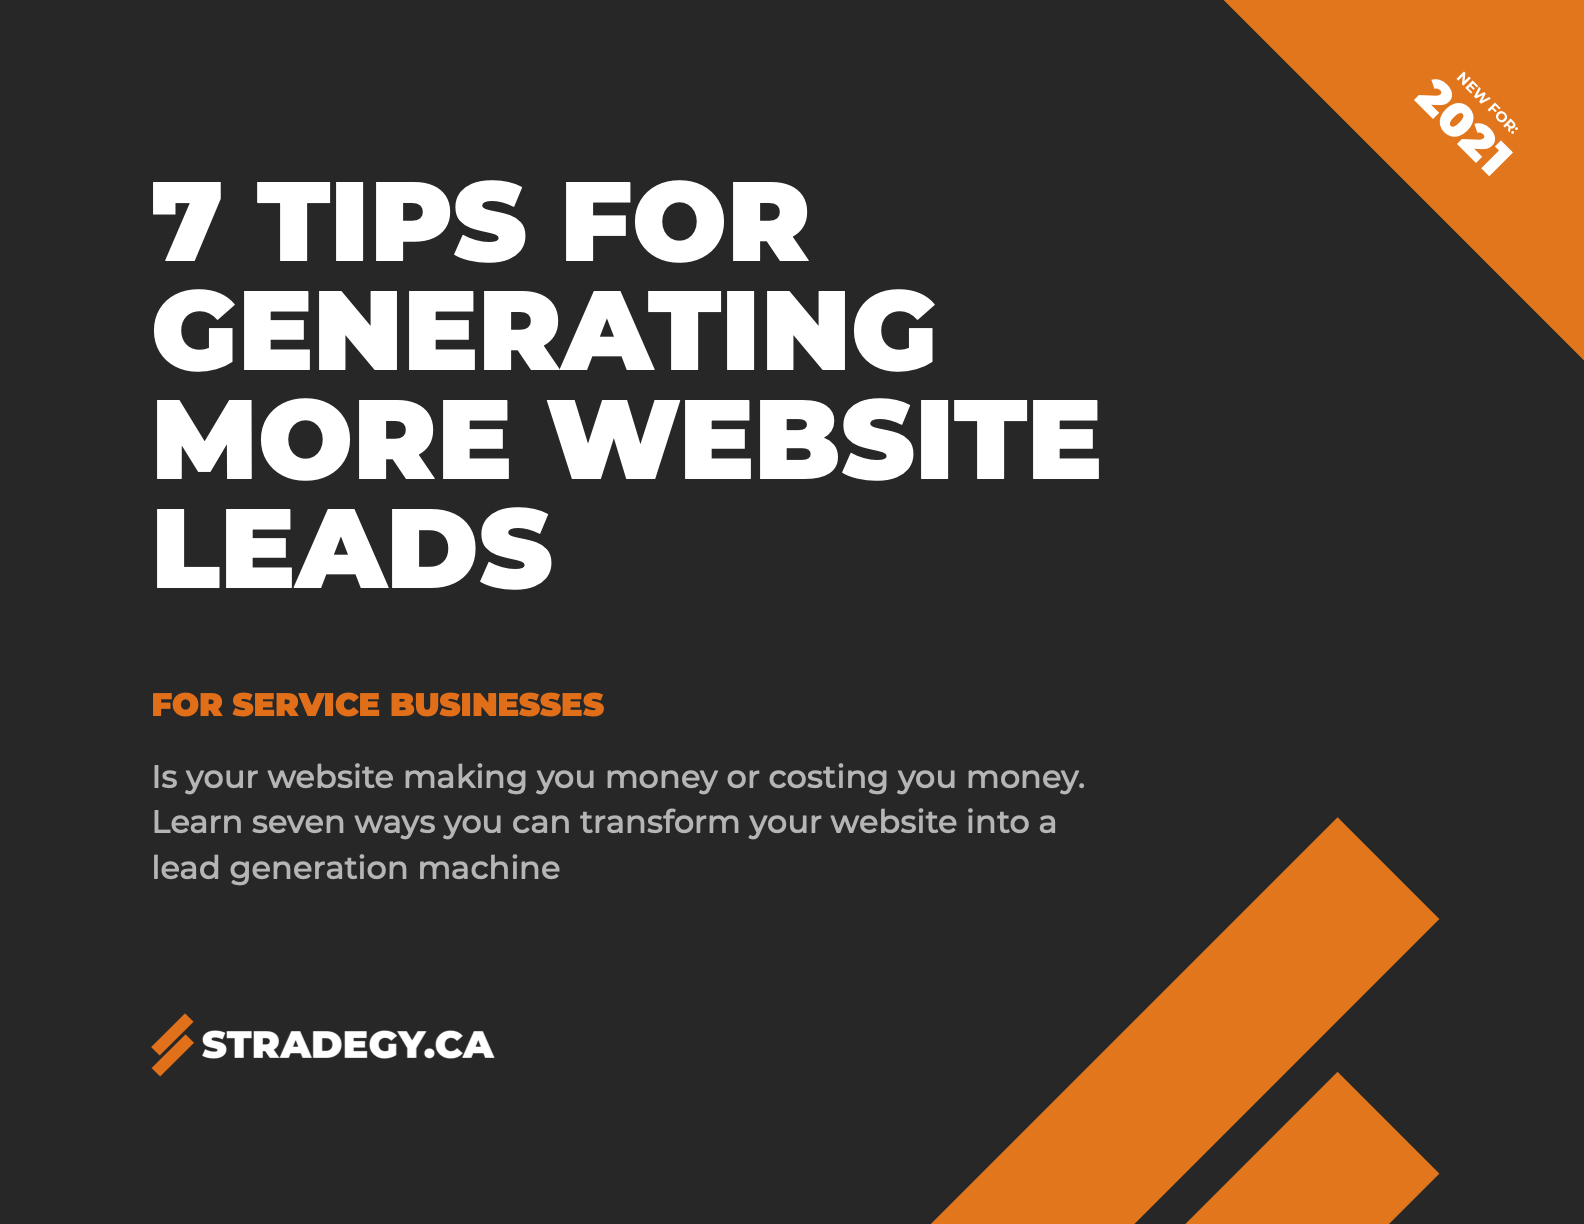 Document Cover: 7 tips for generating more website leads